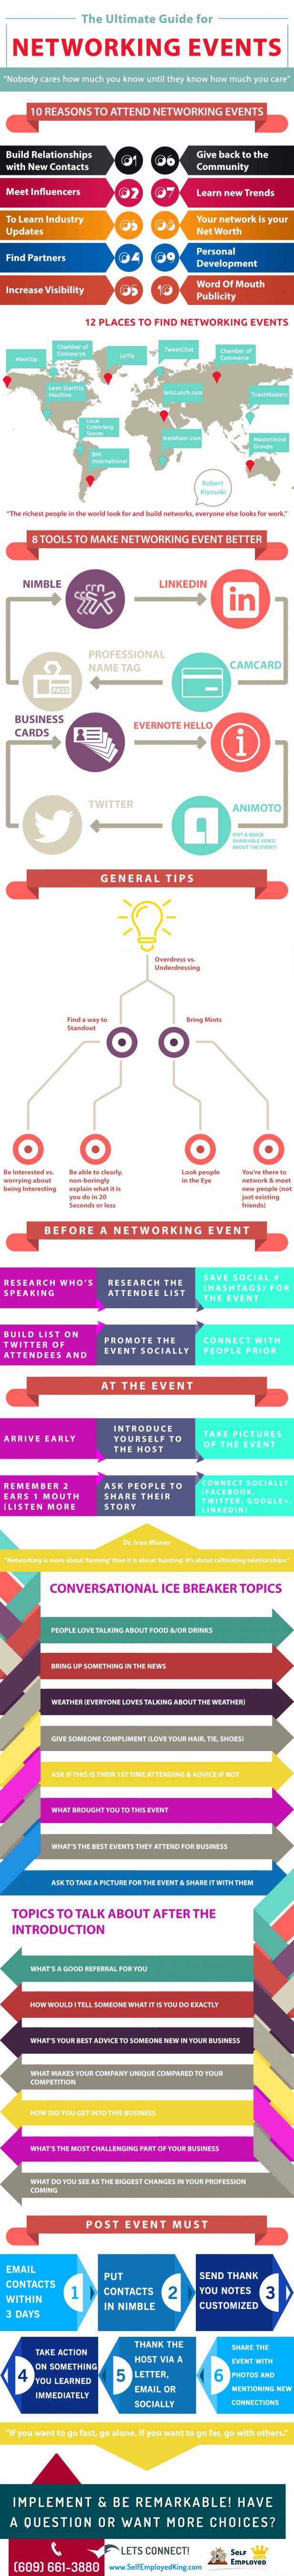 The Ultimate Guide for Networking Events. Close to 50 entrepreneurs and small business owners share their marketing strategies for both before, during and after attending a networking event.